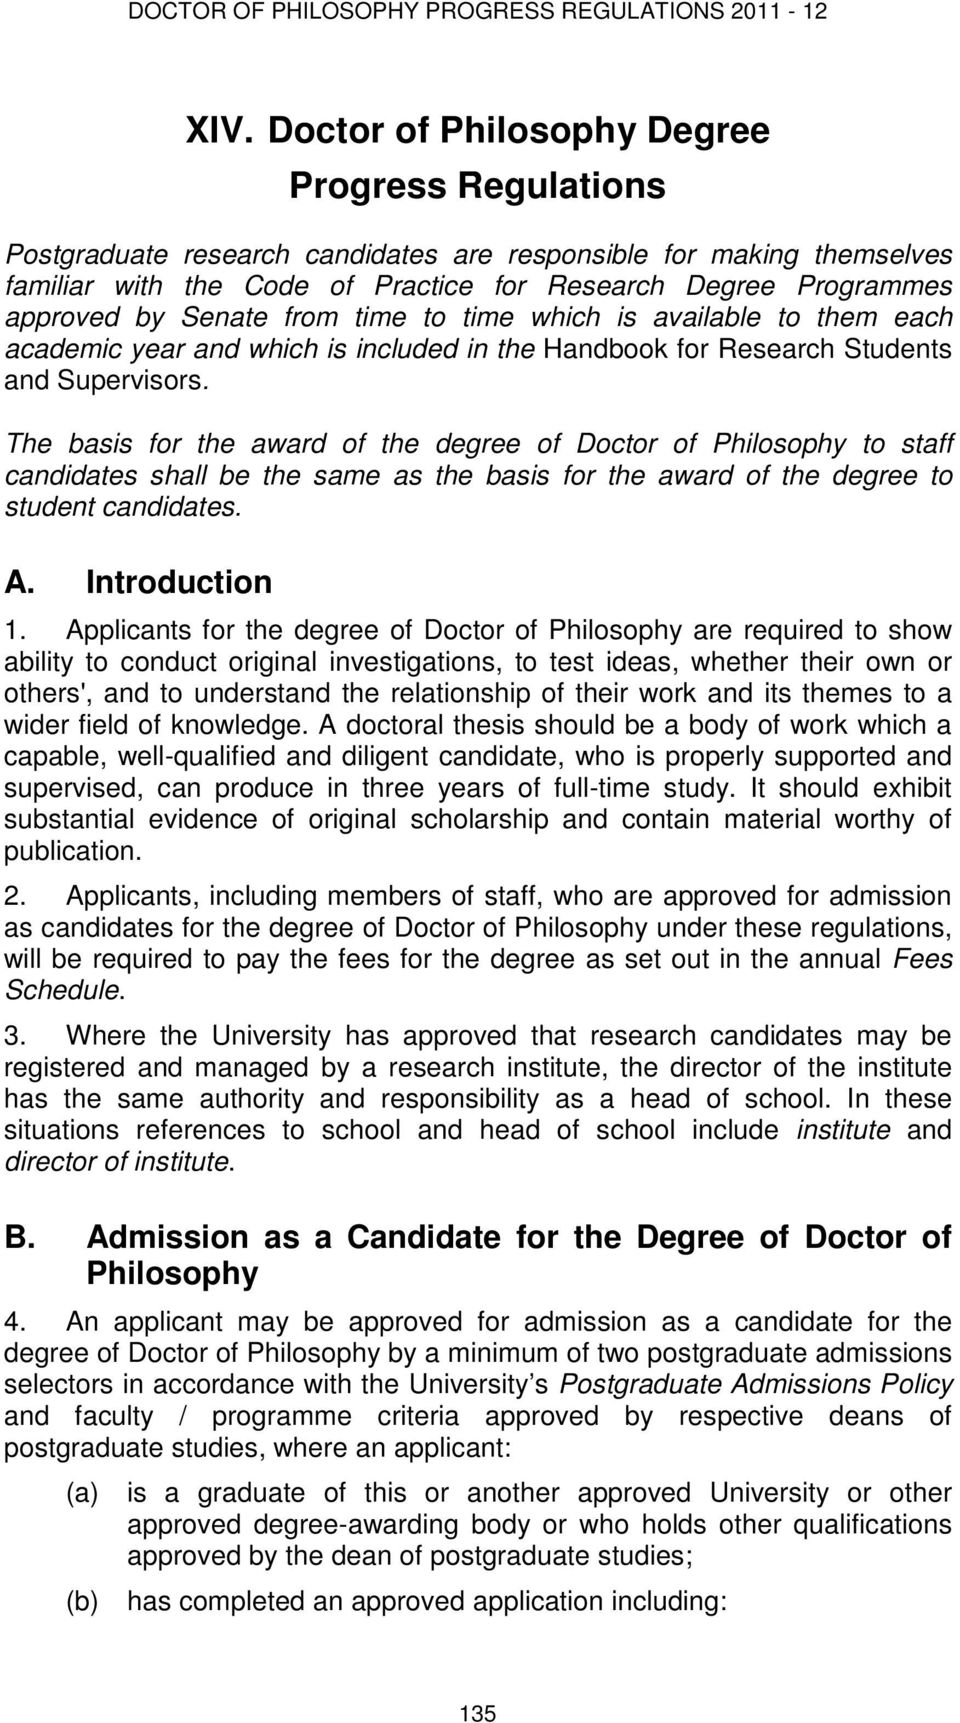 The basis for the award of the degree of Doctor of Philosophy to staff candidates shall be the same as the basis for the award of the degree to student candidates. A. Introduction 1.